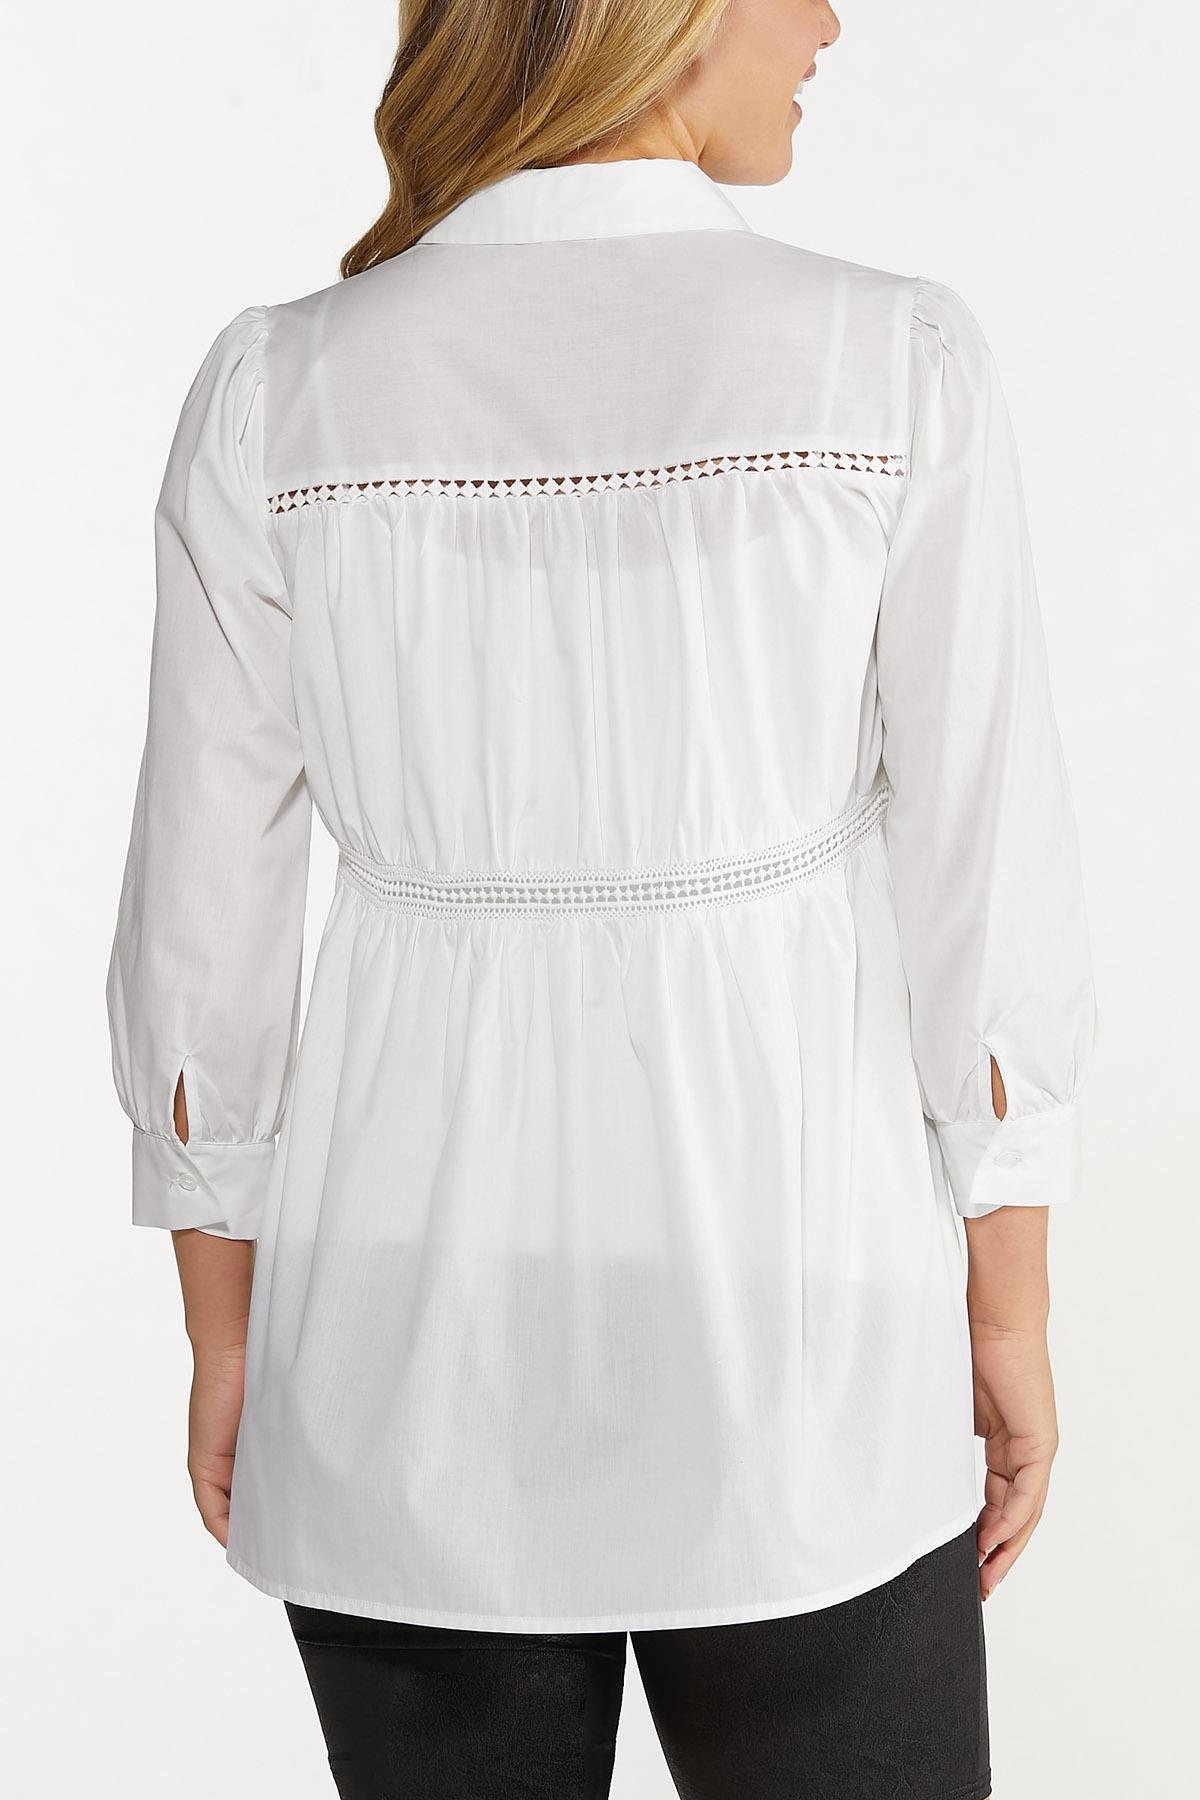 Plus Size Embroidered Trim Button Tunic (Item #44617854)